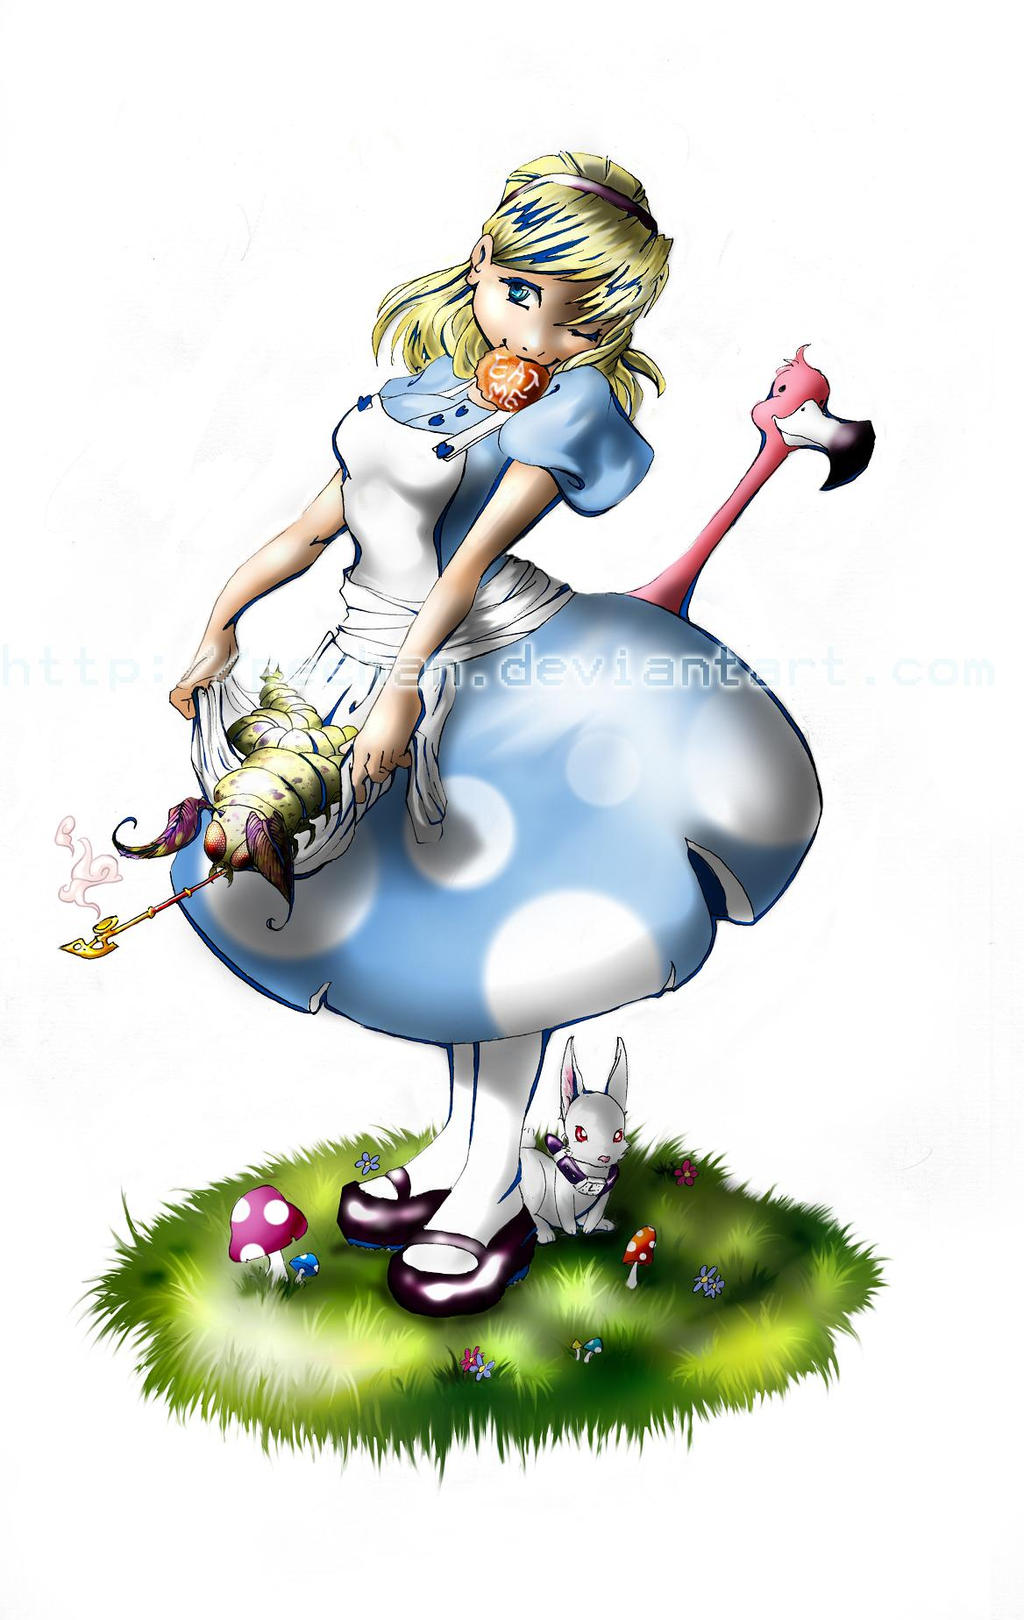 Alice is Wonderland by Pechan